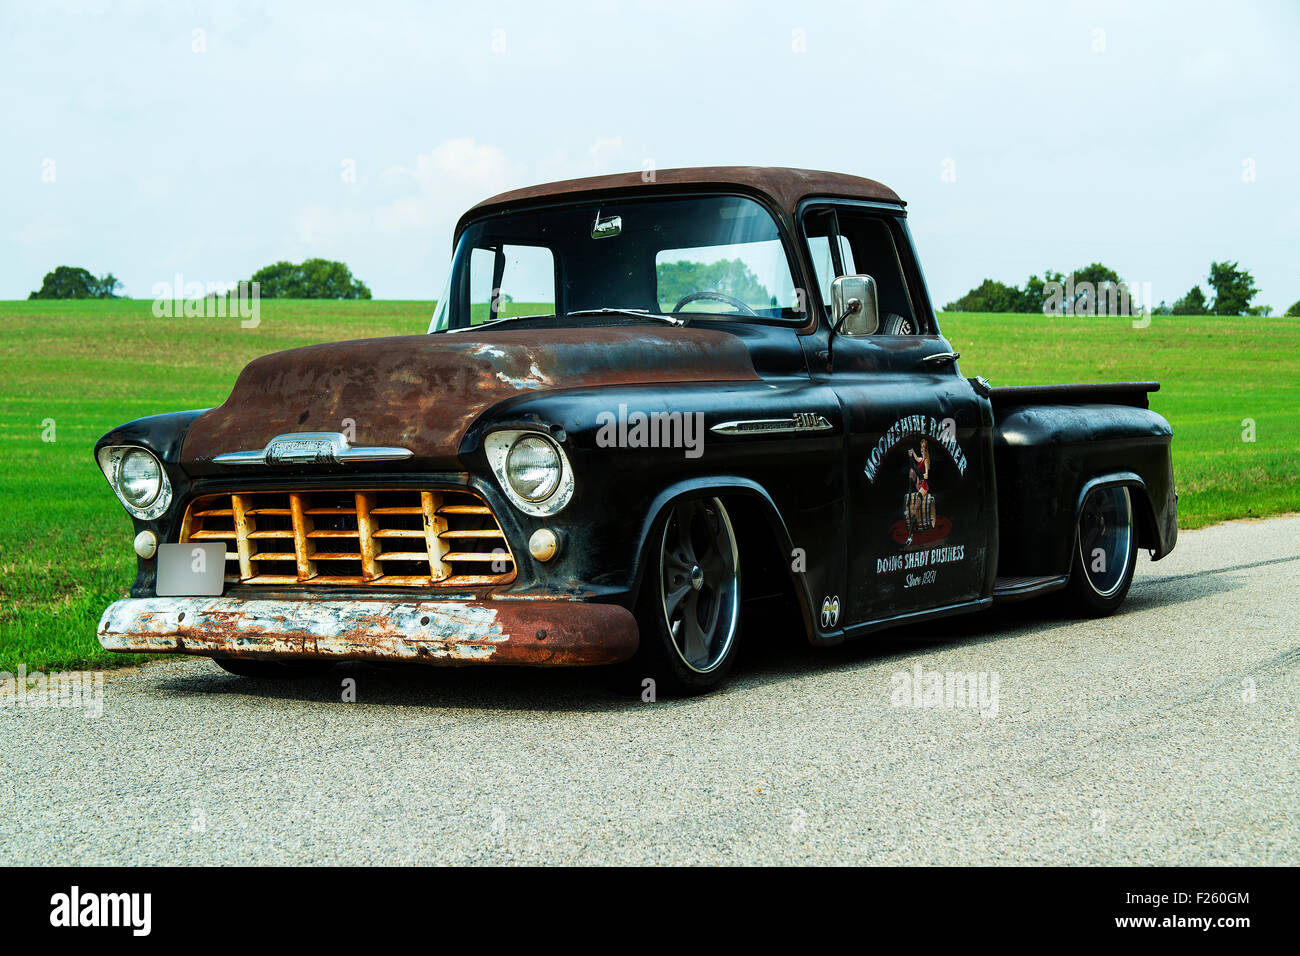 1956 Chevrolet Custom Rat Rod Pickup Truck Stock Photo: 87413332 - Alamy